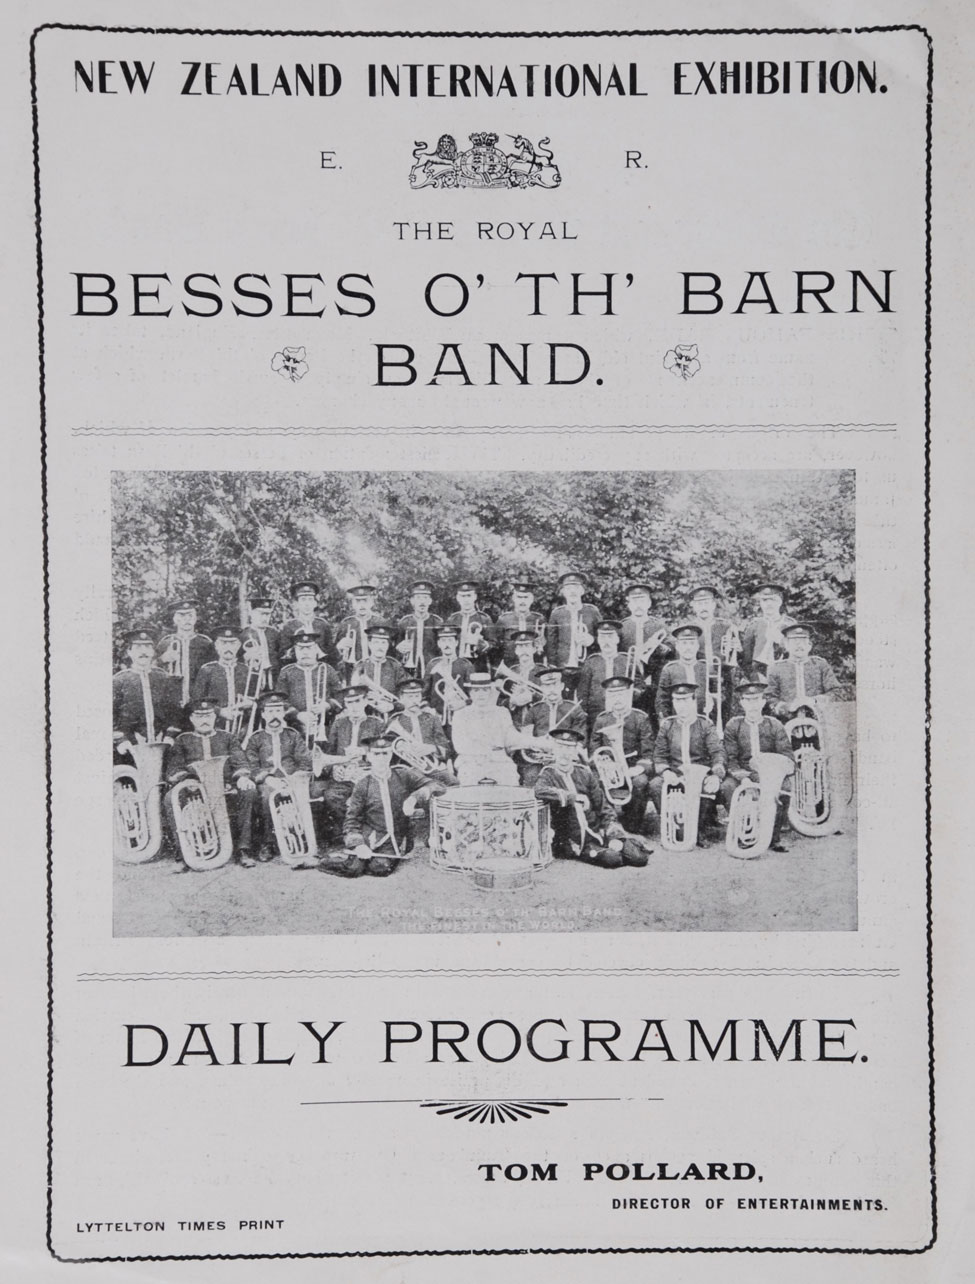 The Royal Besses o' th' Barn Band, New Zealand International Exhibition: Daily Programme.